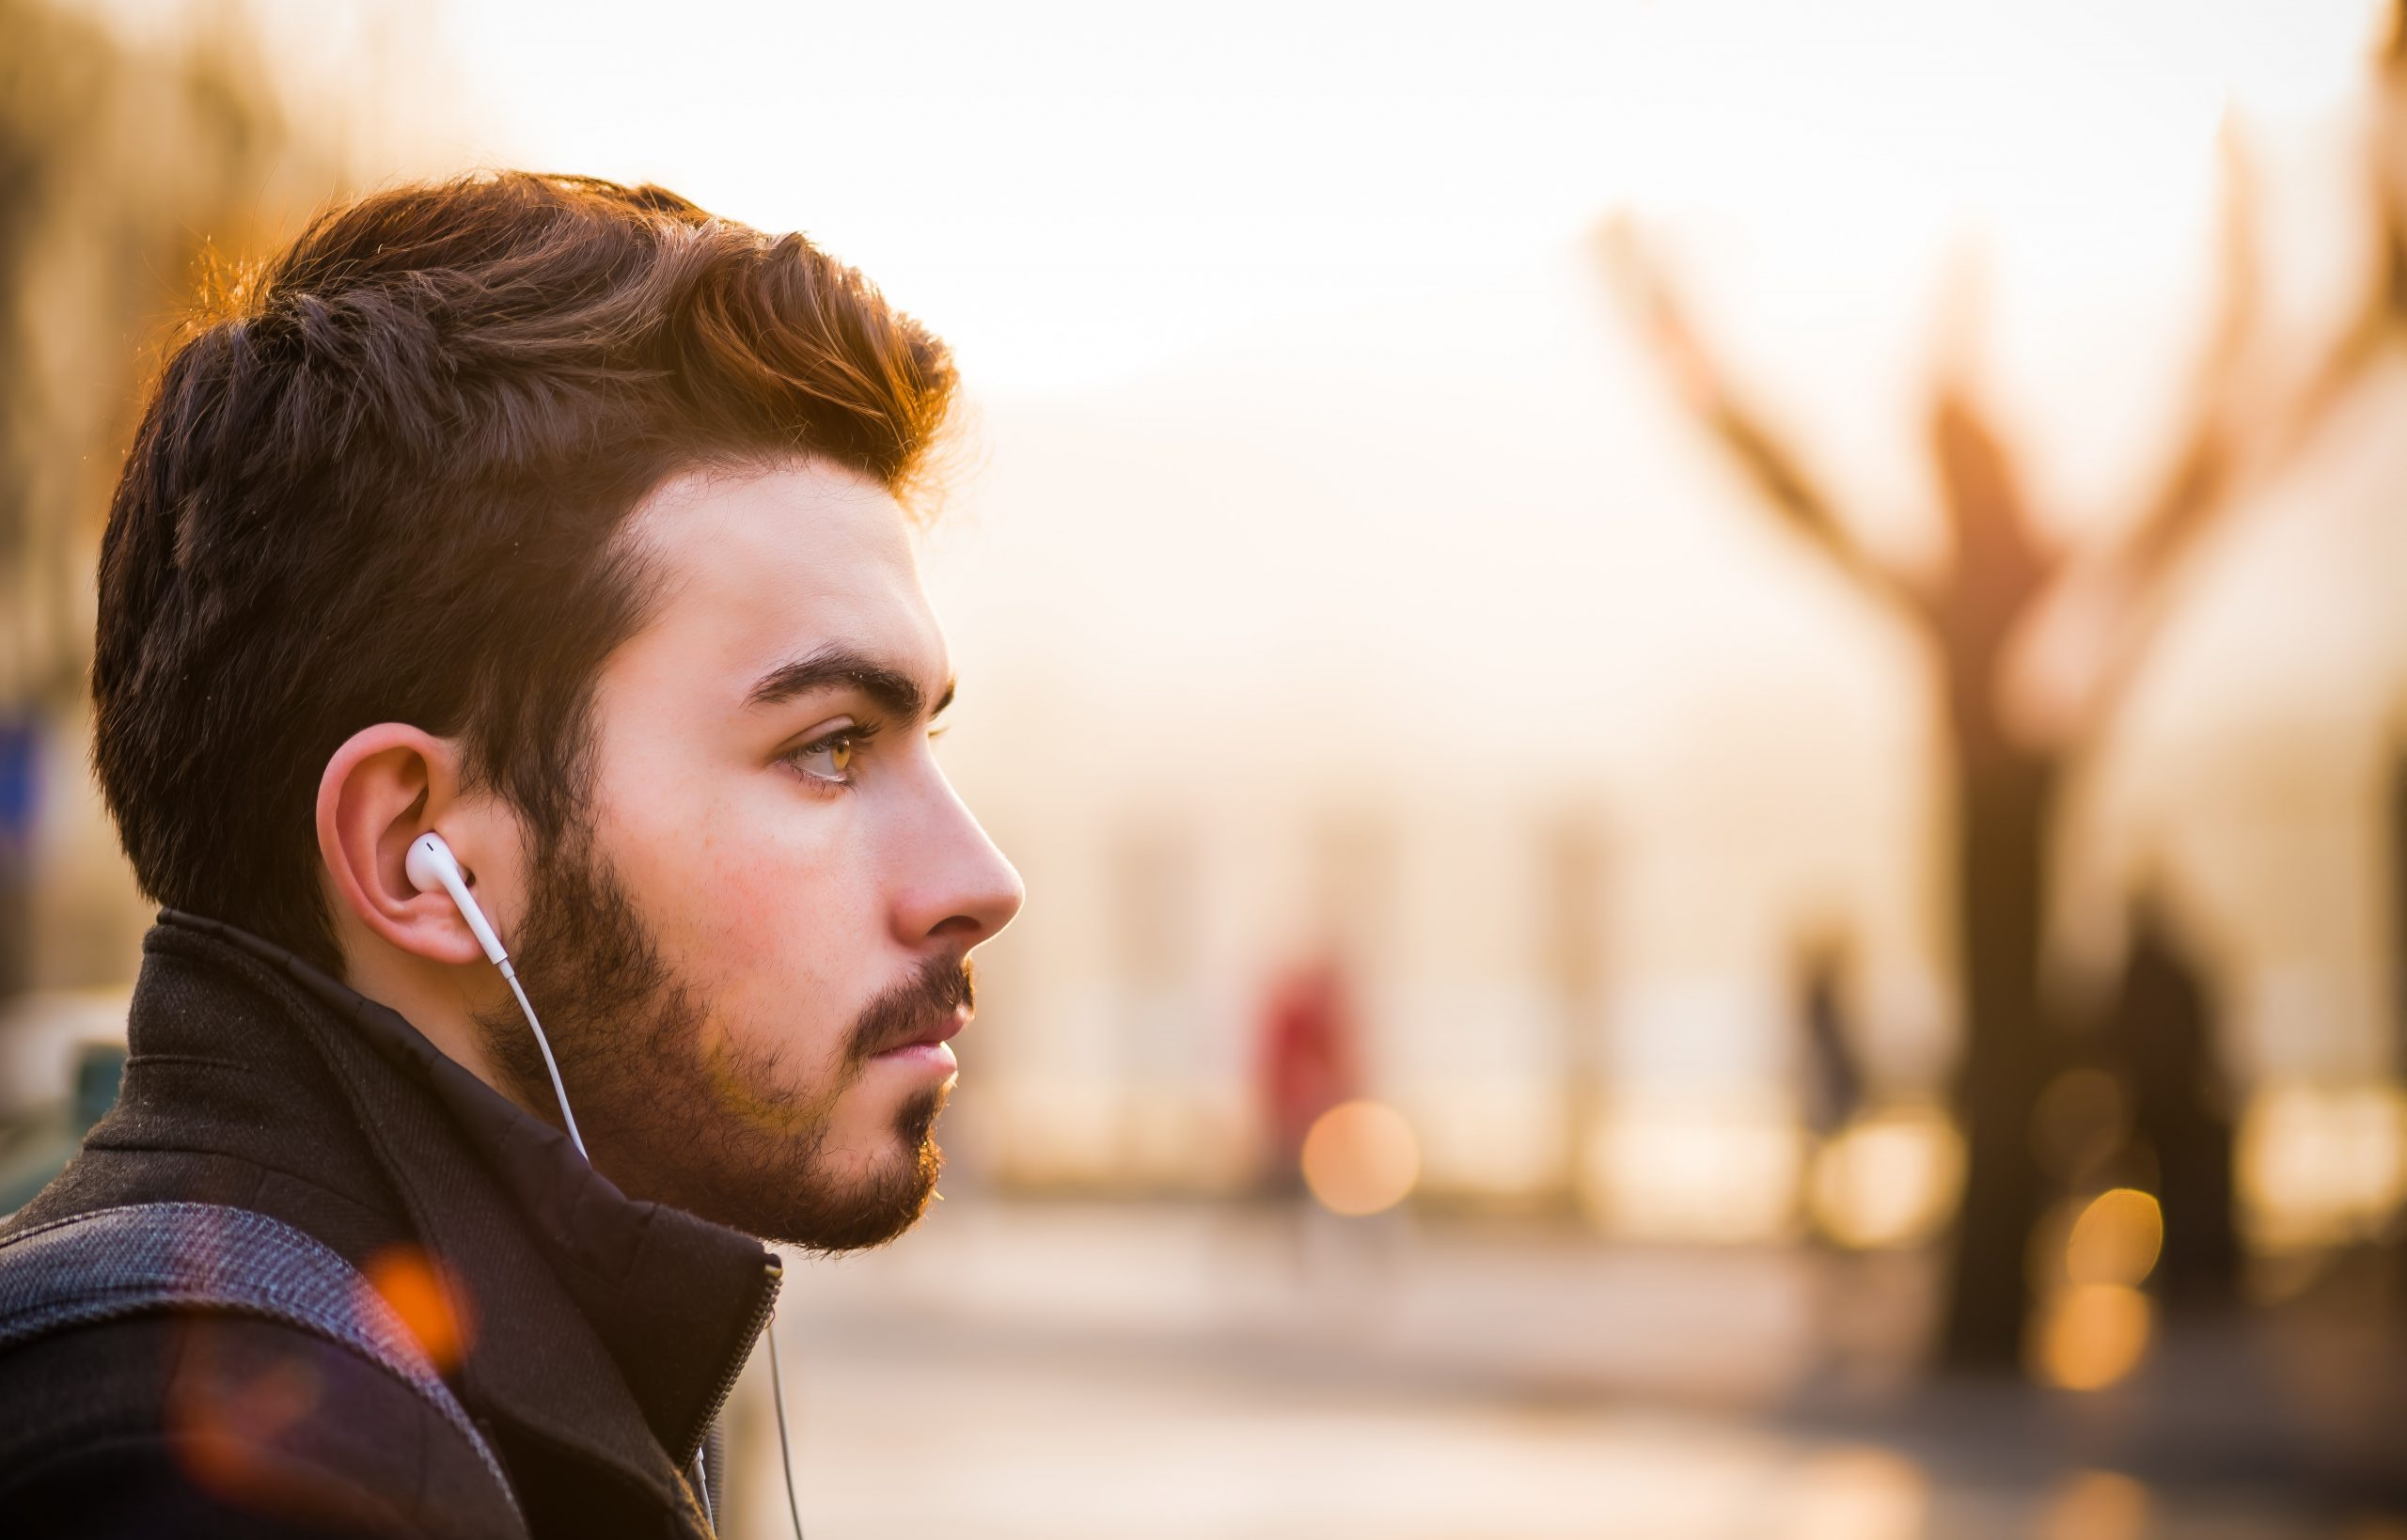 bokeh lights photography of man listening to in-ear earphones